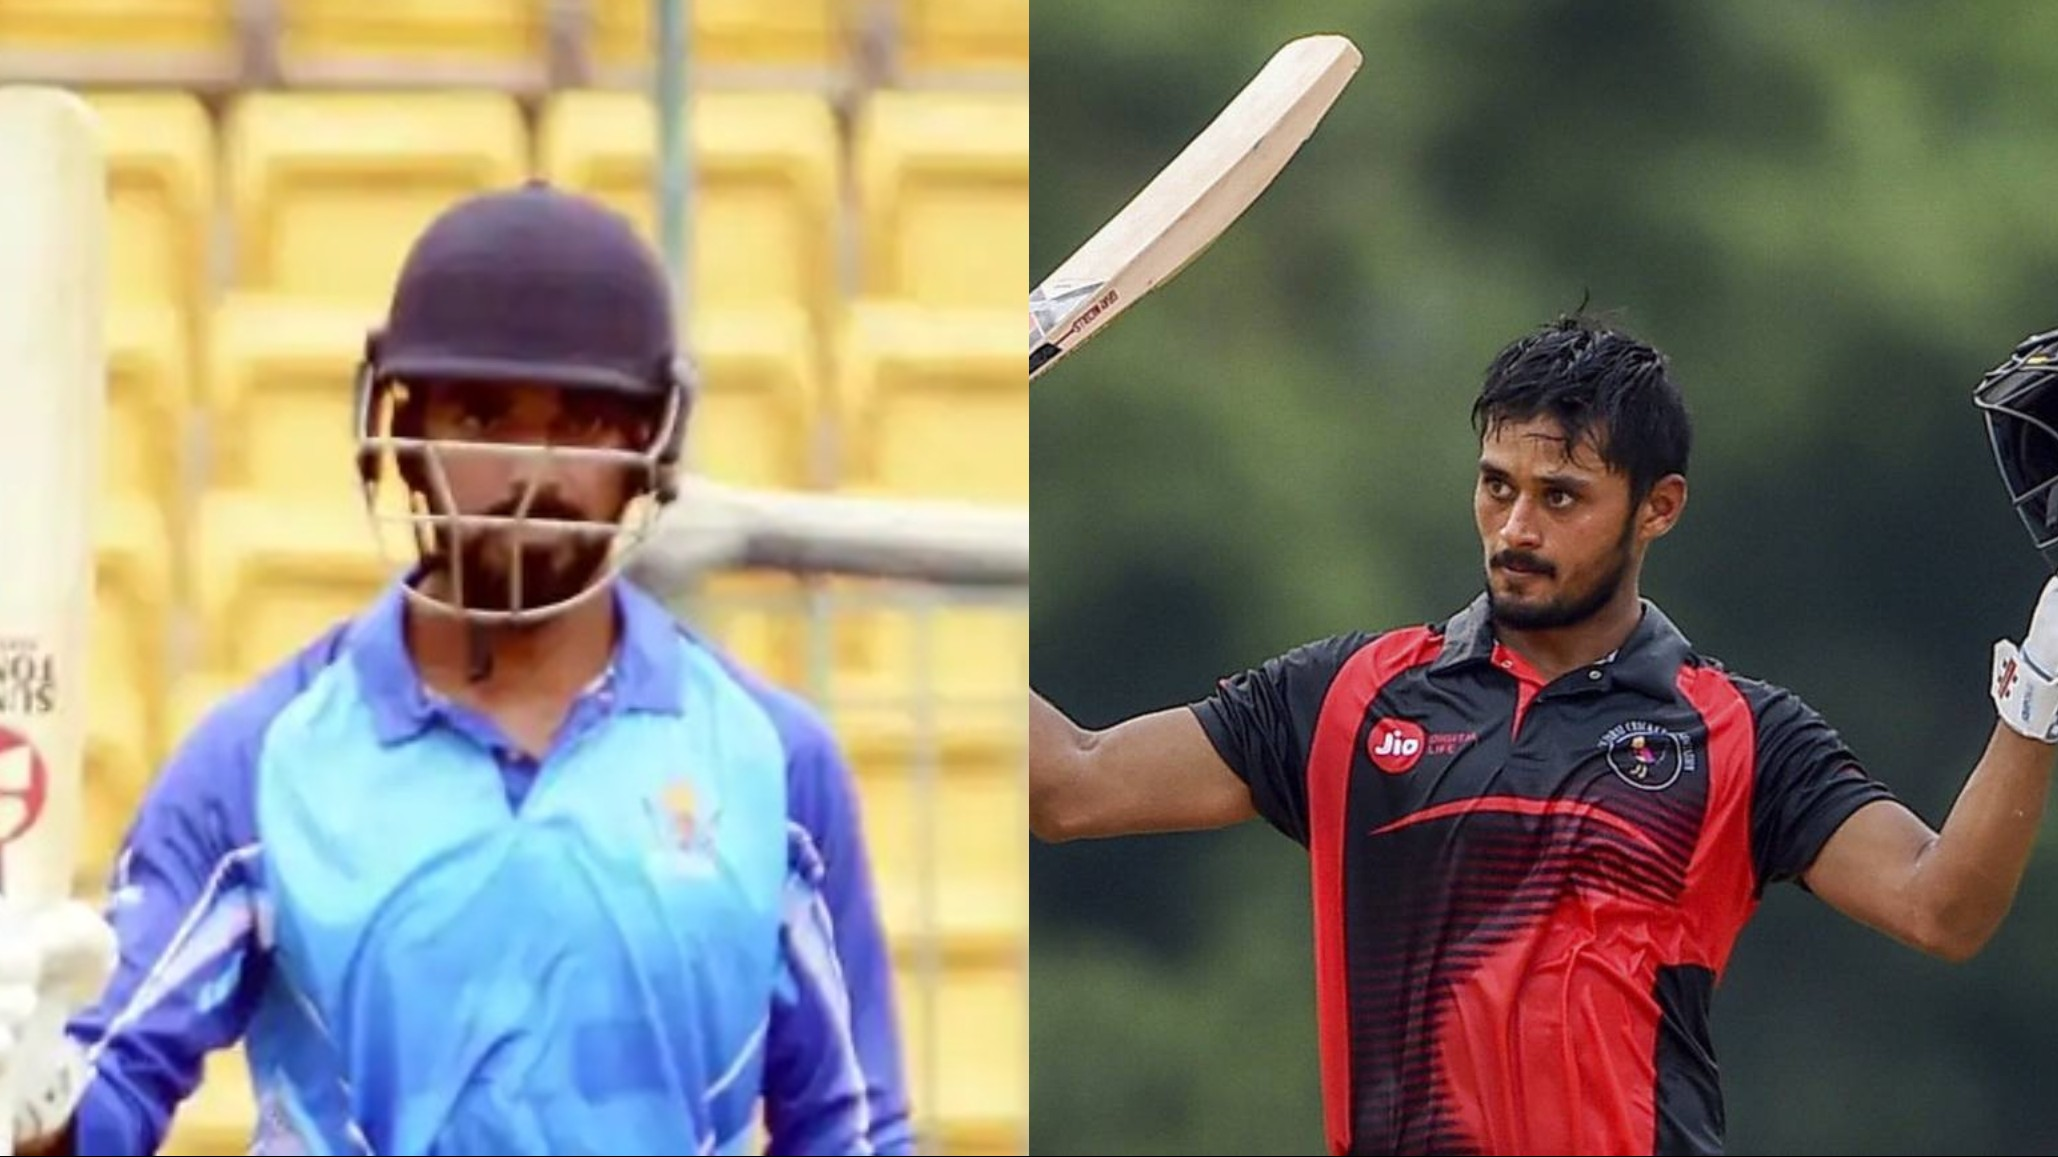 Vijay Hazare Trophy 2019-20: Gujarat beats Delhi and Karnataka defeats Puducherry to make it into semis